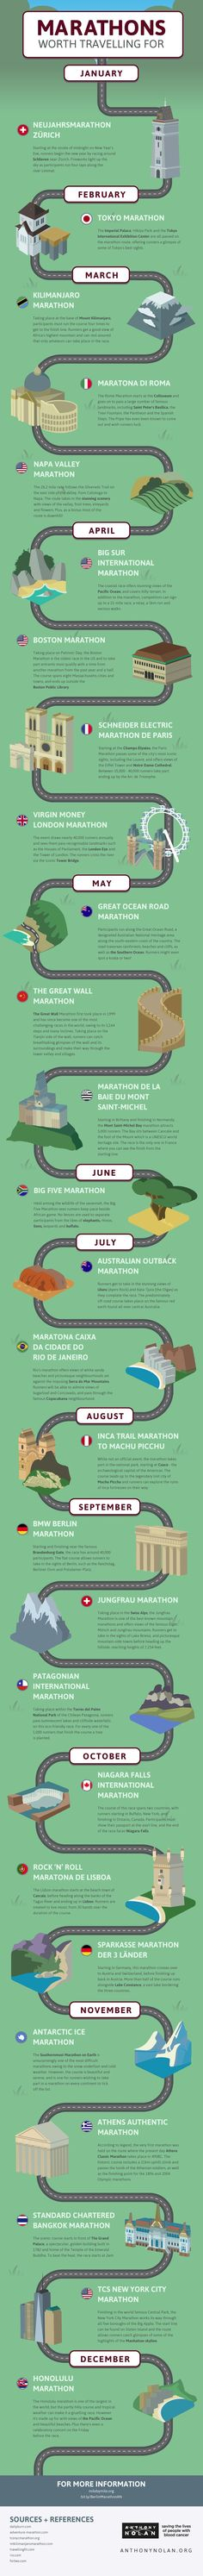 Thank you to Anthony Nolan for sharing this infographic with us! We hope all those running in support of your organization enjoy a year of…